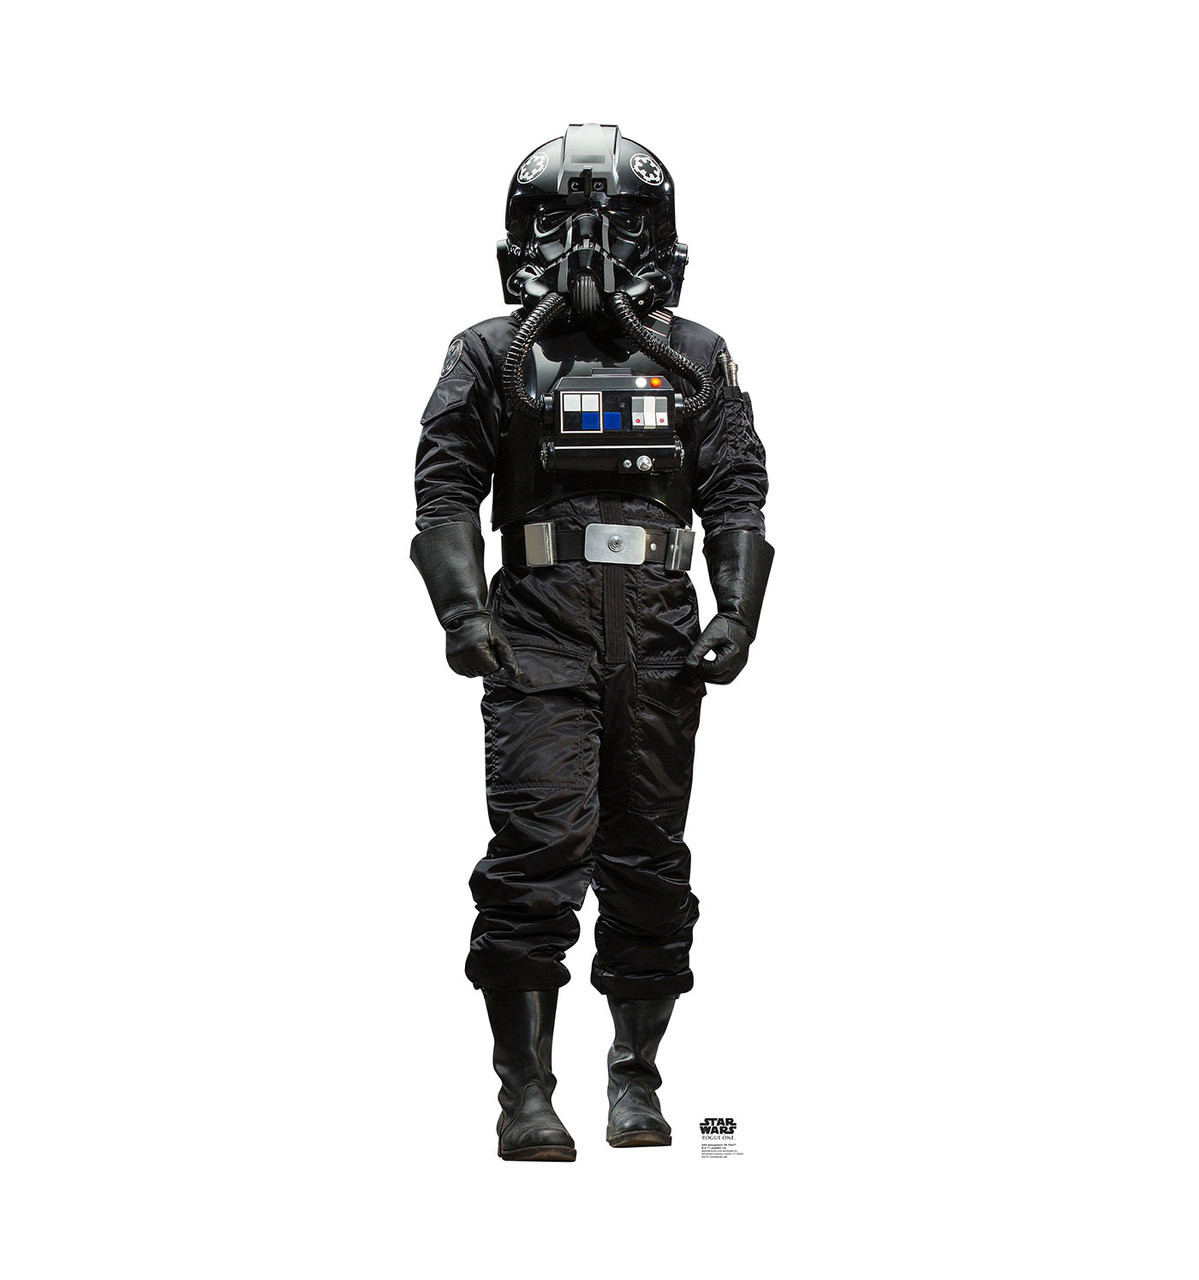 Atmospheric TIE Pilot - Rogue One - Cardboard Cutout Front View